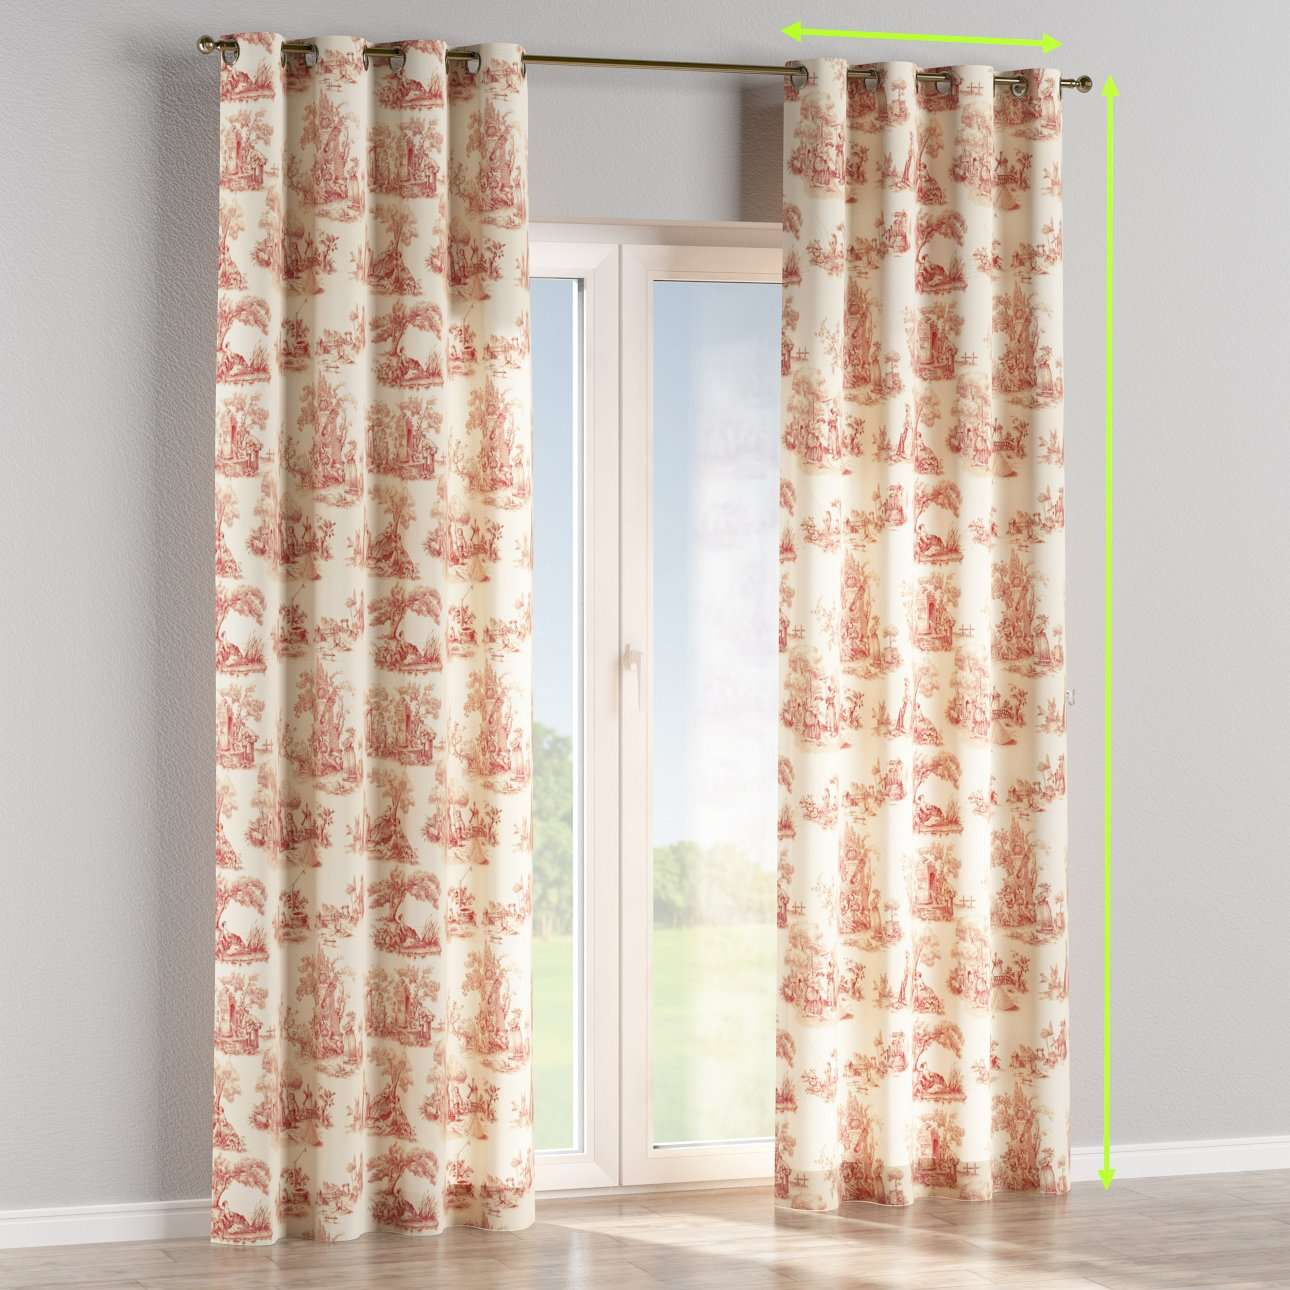 Eyelet curtains in collection Avinon, fabric: 132-15